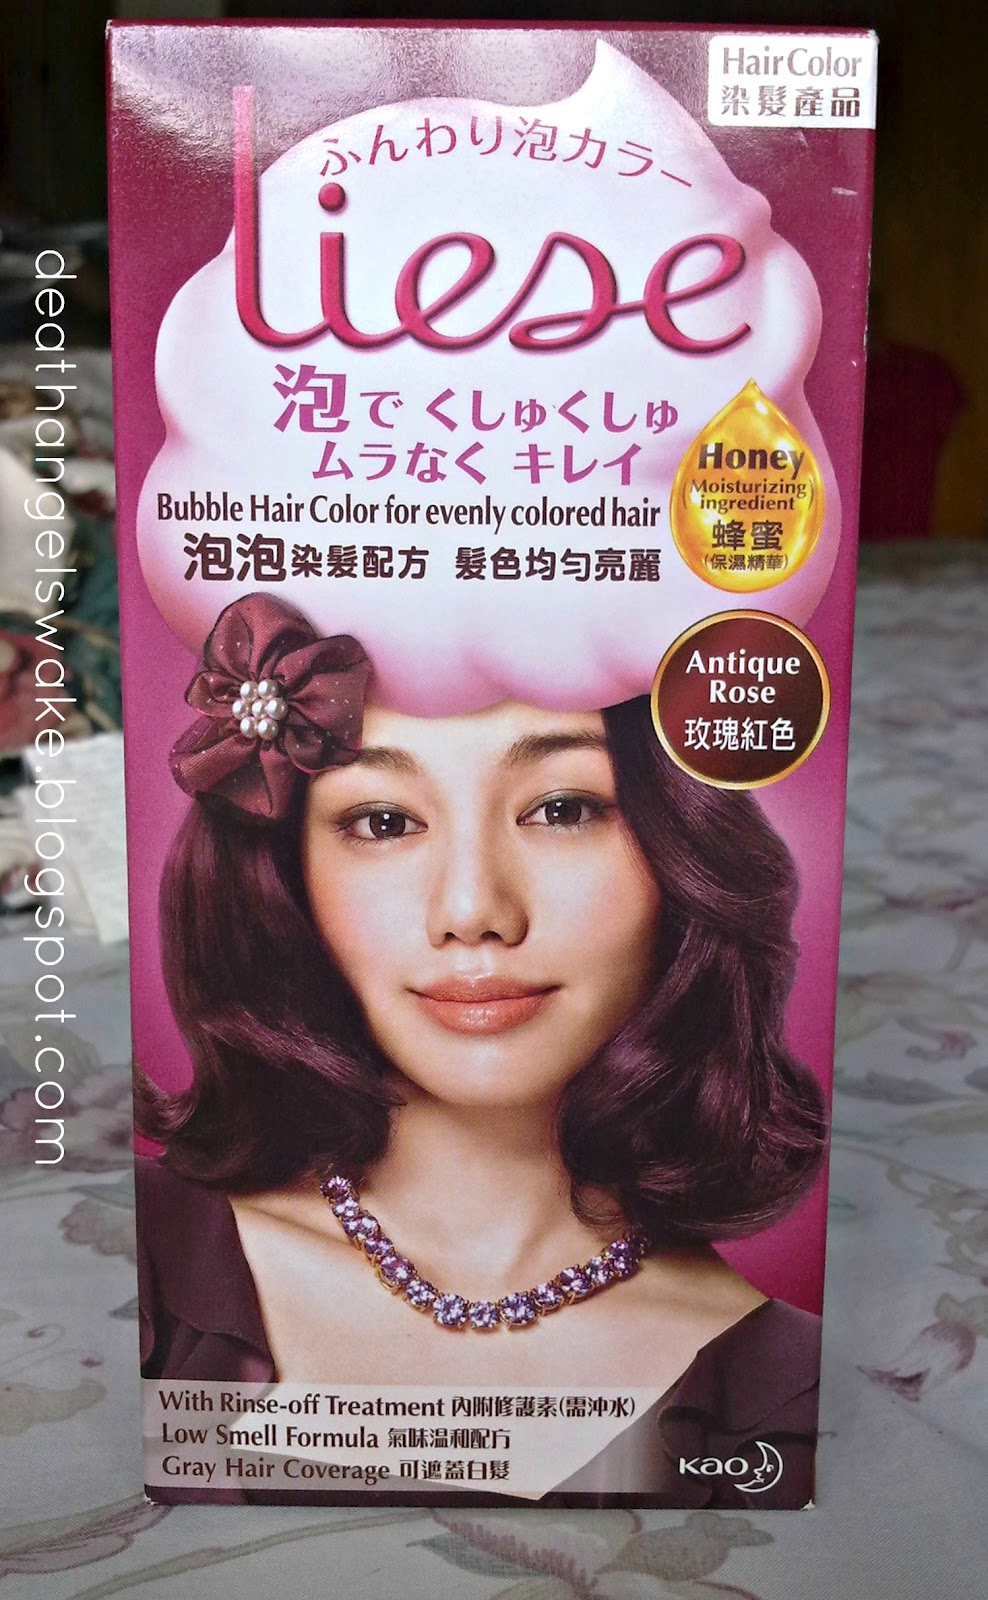 Chocolate Cherry Red Hair Color Kao liese bubble hair color in